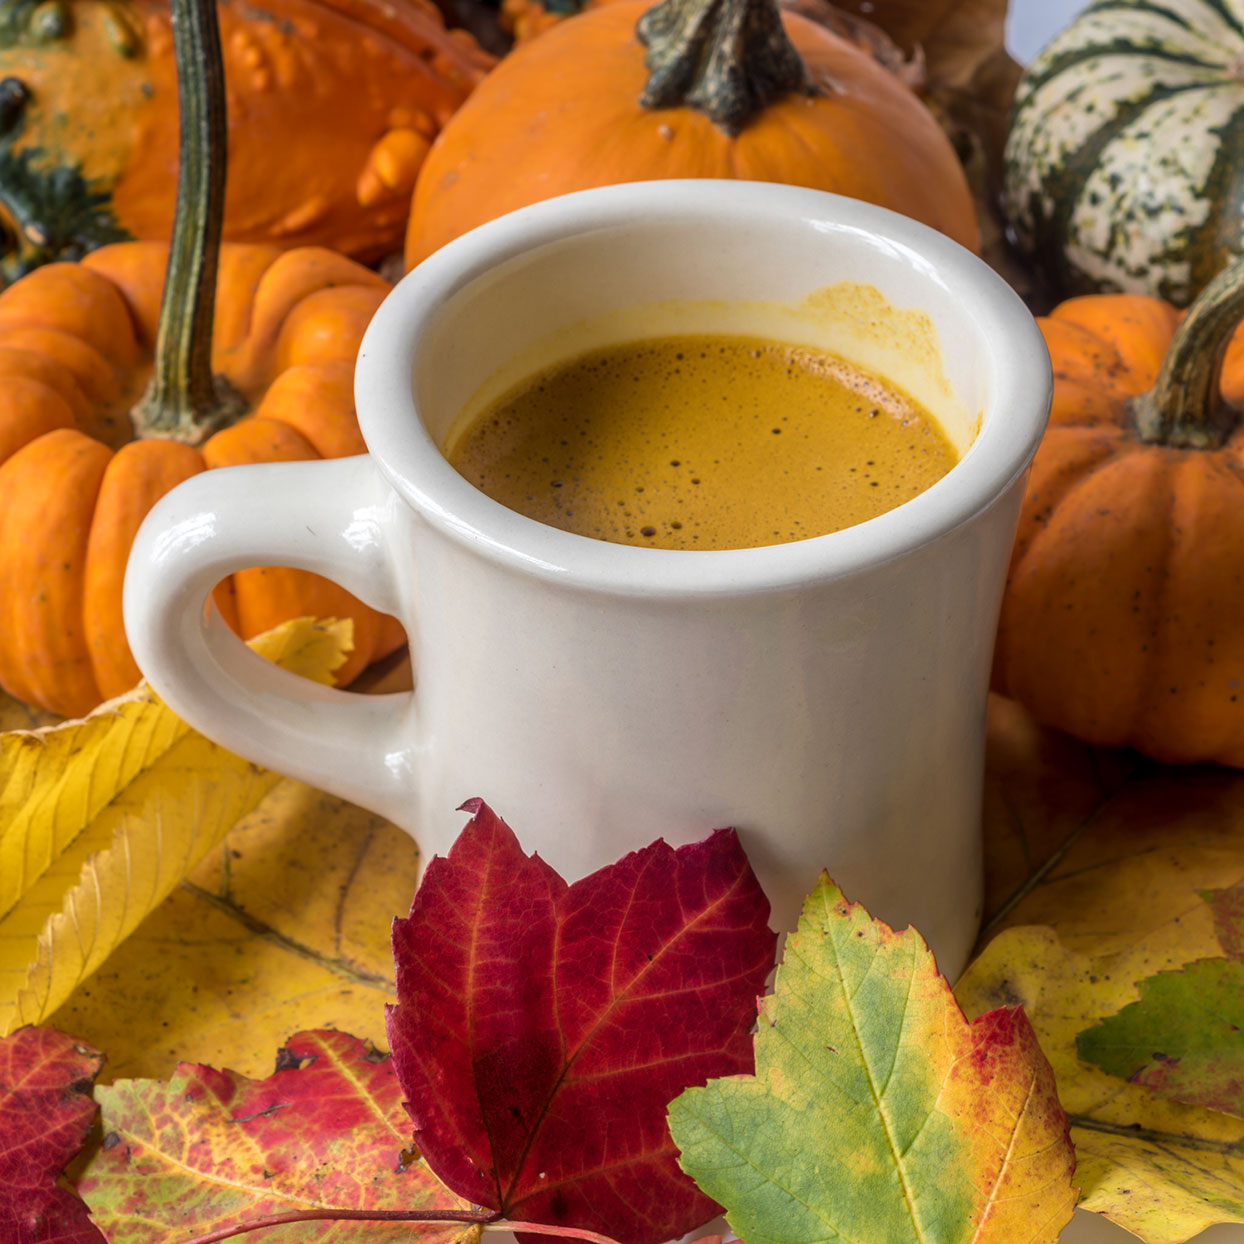 mug of creamy coffee with pumpkins and fall leaves around